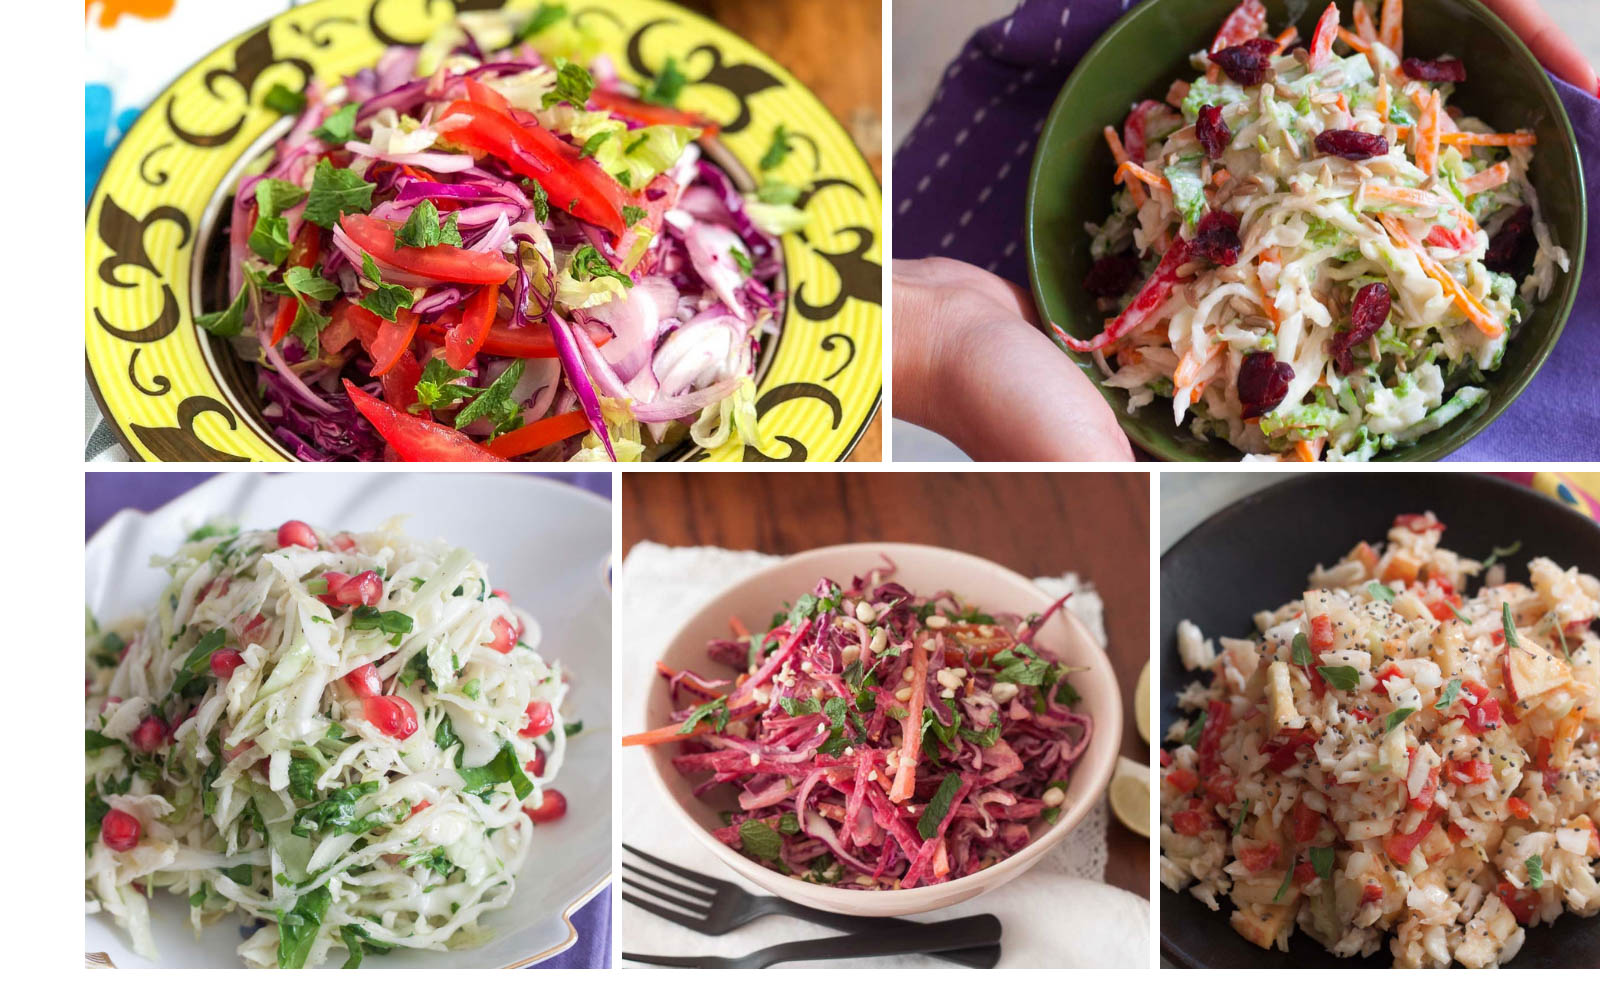 Refreshing & Inviting Cabbage Salad Meals For Lunch Or Dinner